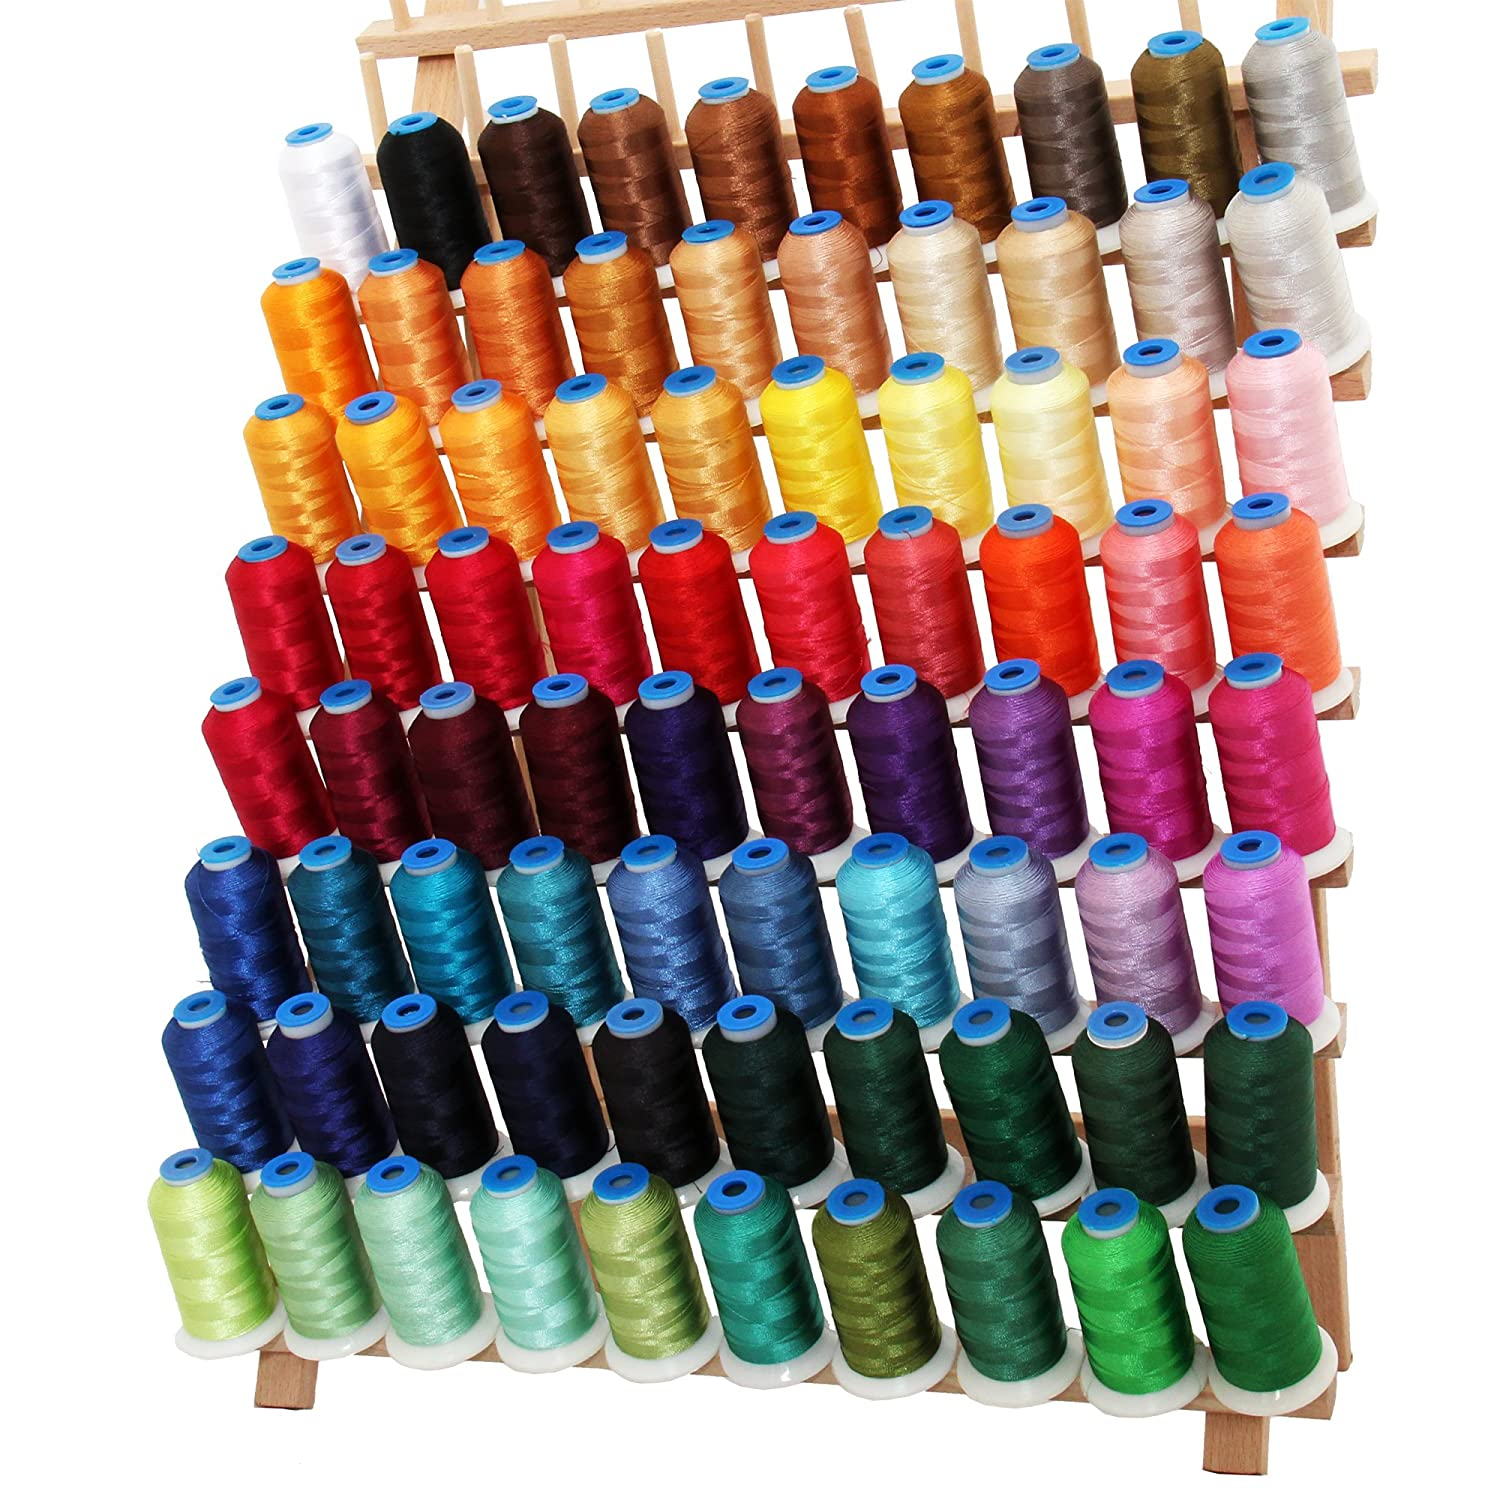 80 Cone Rayon Embroidery Thread Set - Includes Black and White - 1000m Cones - 40wt - Threadart 4337016367